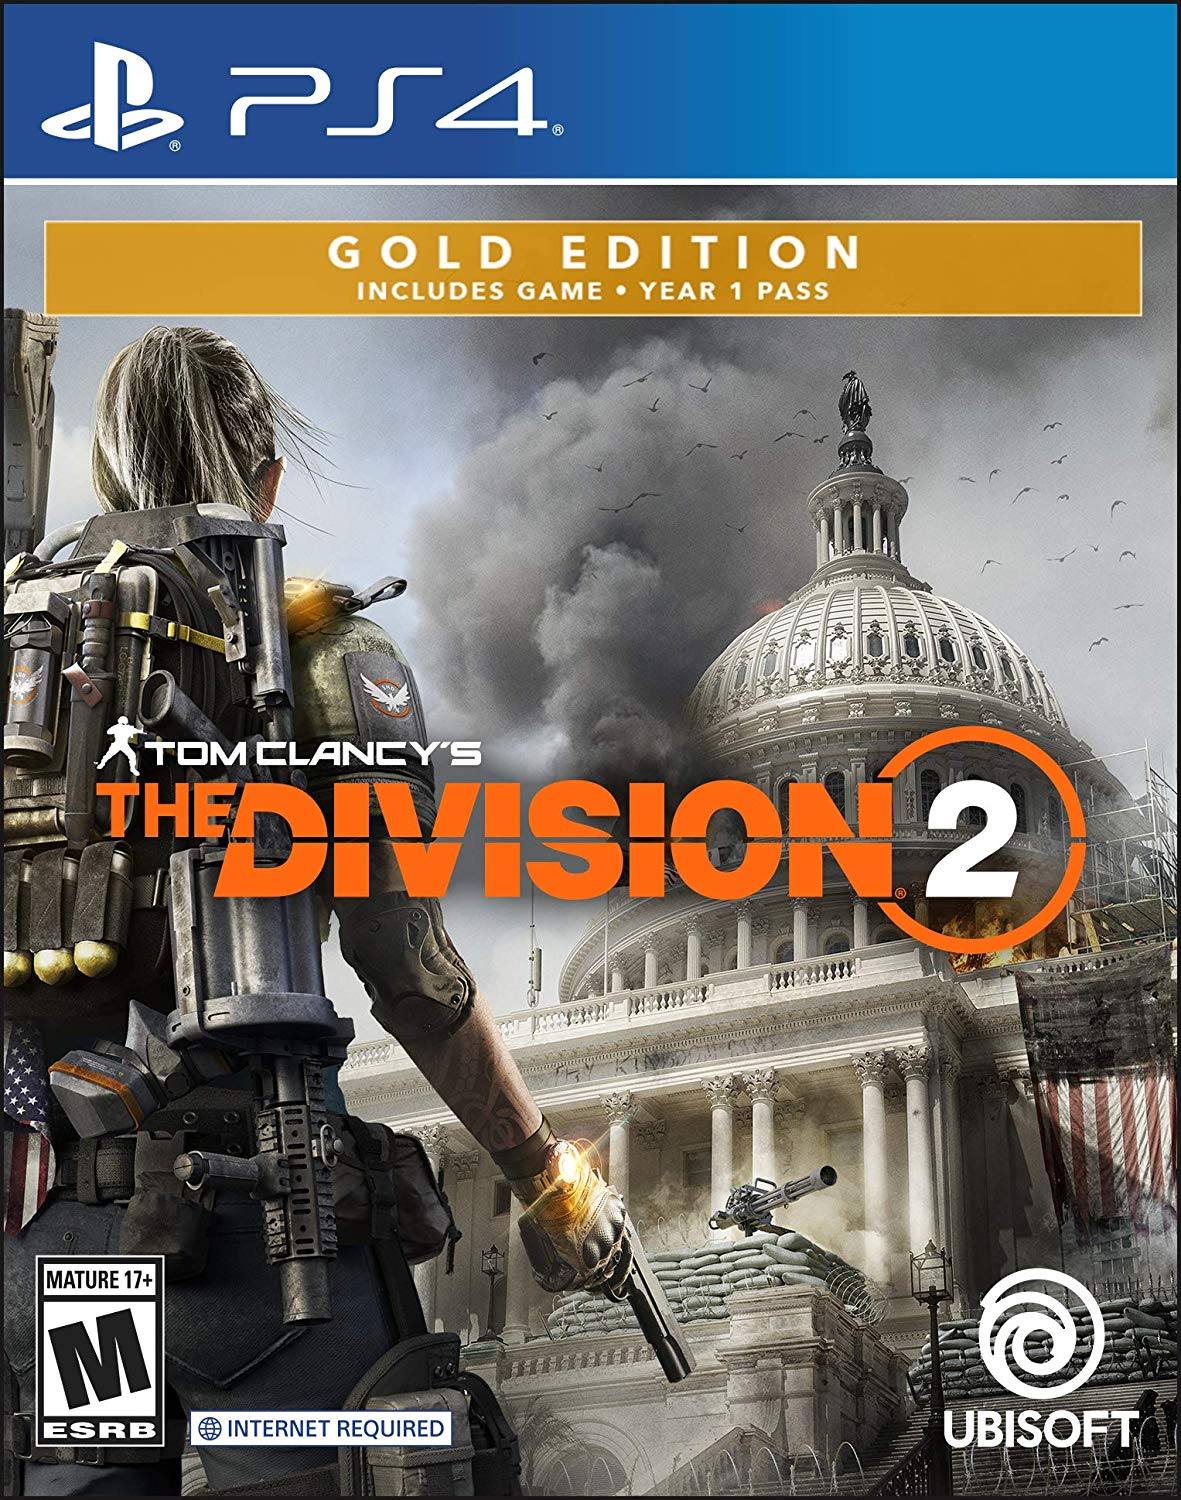 New Games: TOM CLANCY'S THE DIVISION 2 (PC, PS4, Xbox One